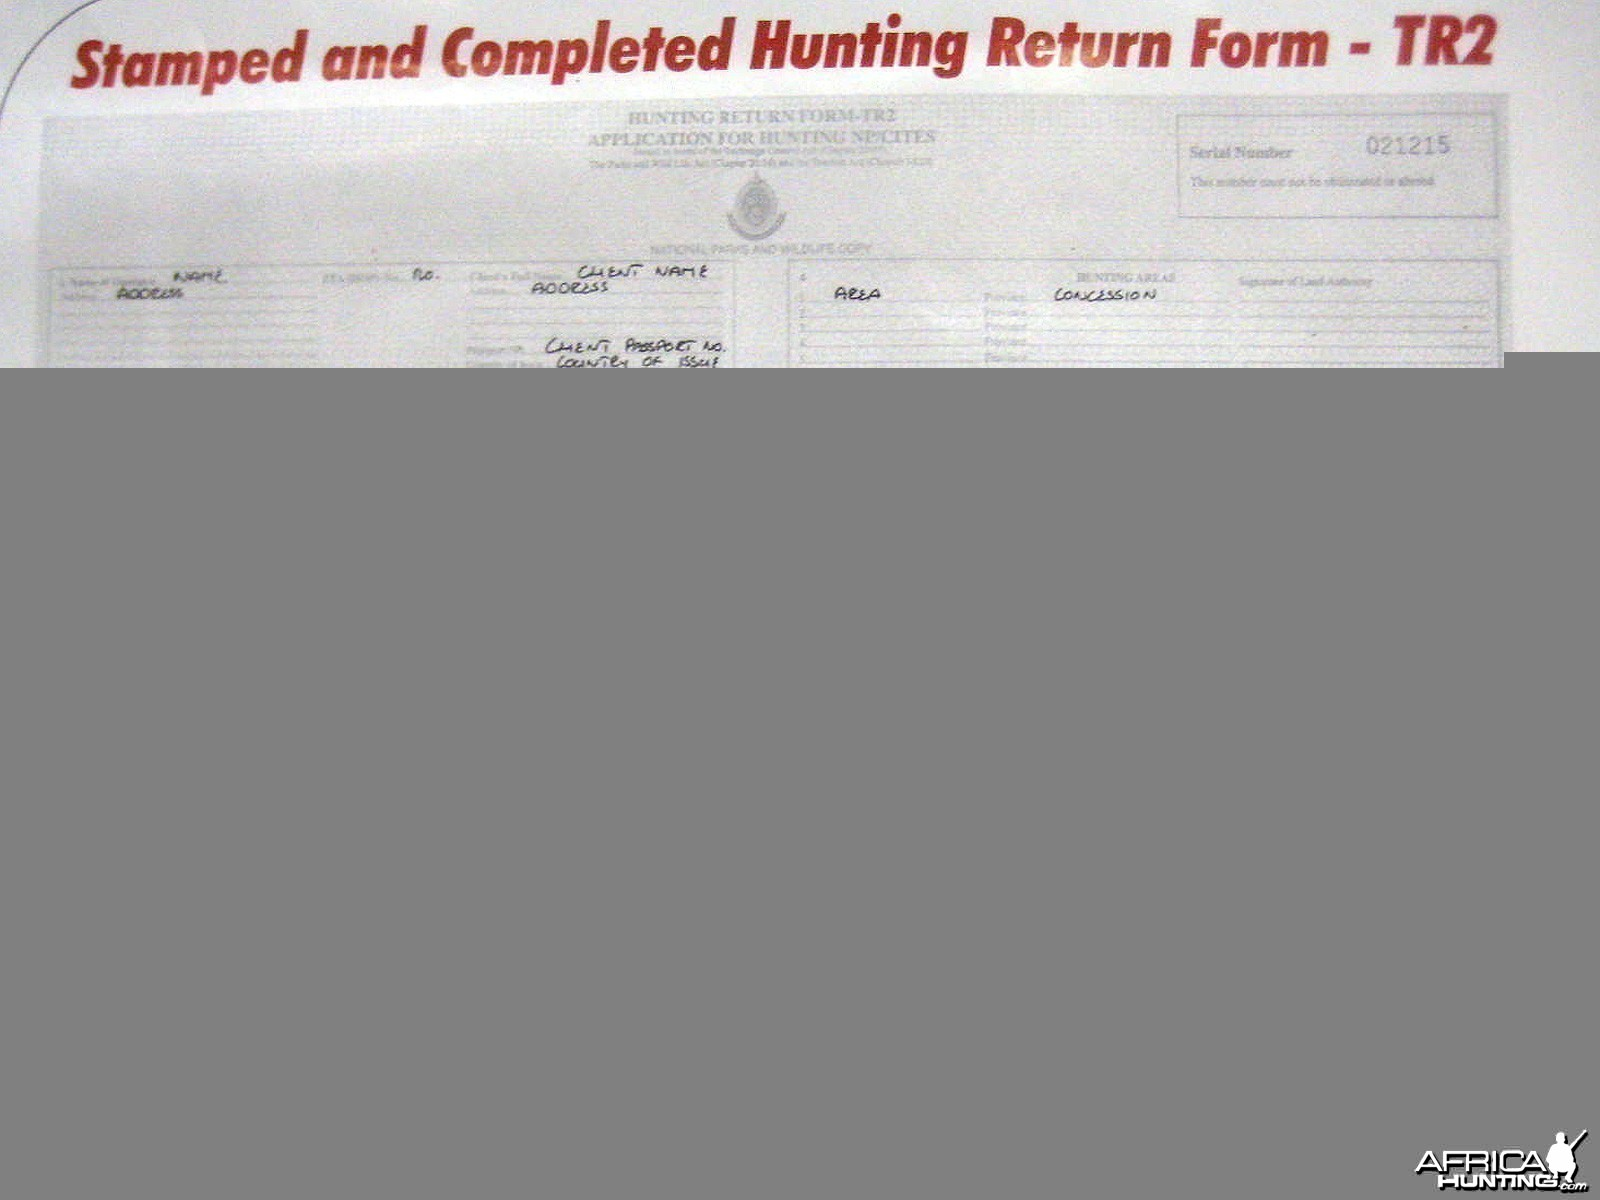 Zimbabwe hunting information hunting completed npcites form 11 tr2 click on images to enlarge falaconquin